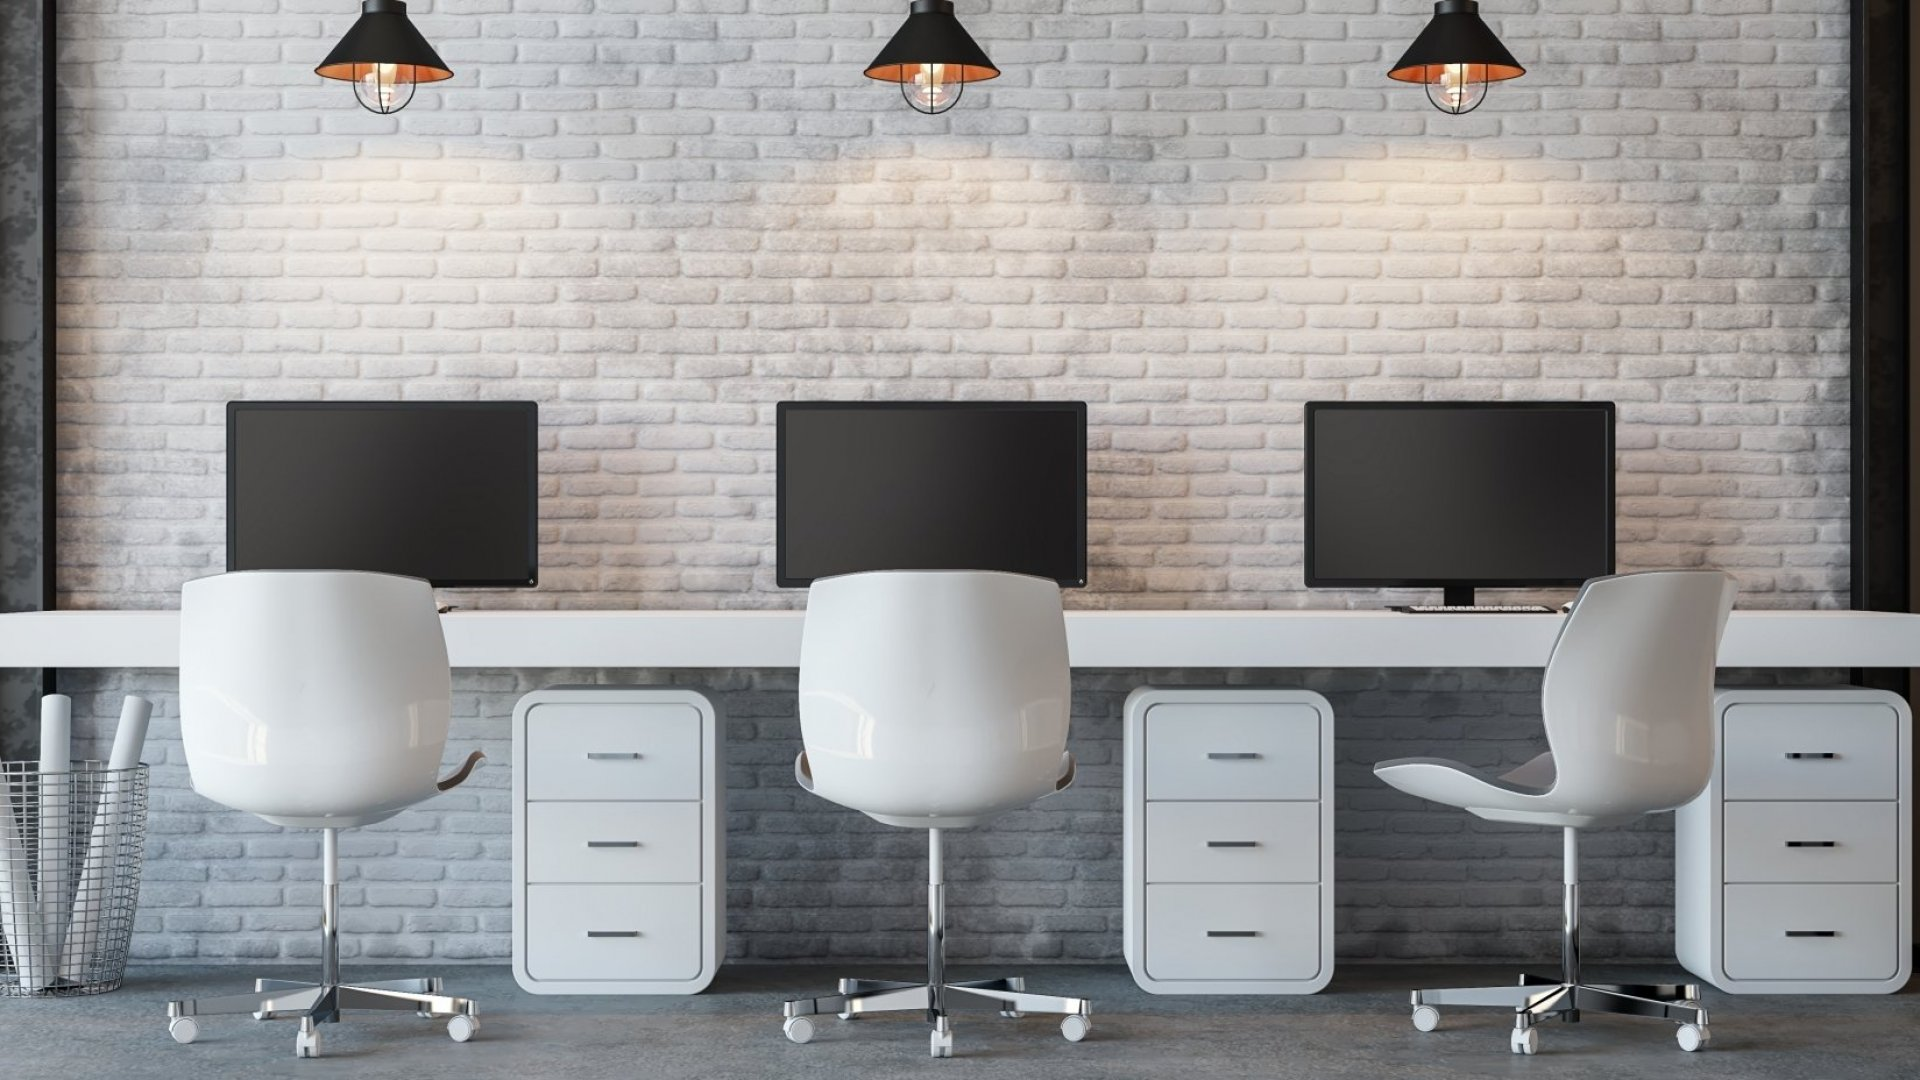 Open Office Layouts Can Work If You Understand This 1 Crucial Thing About Your Company